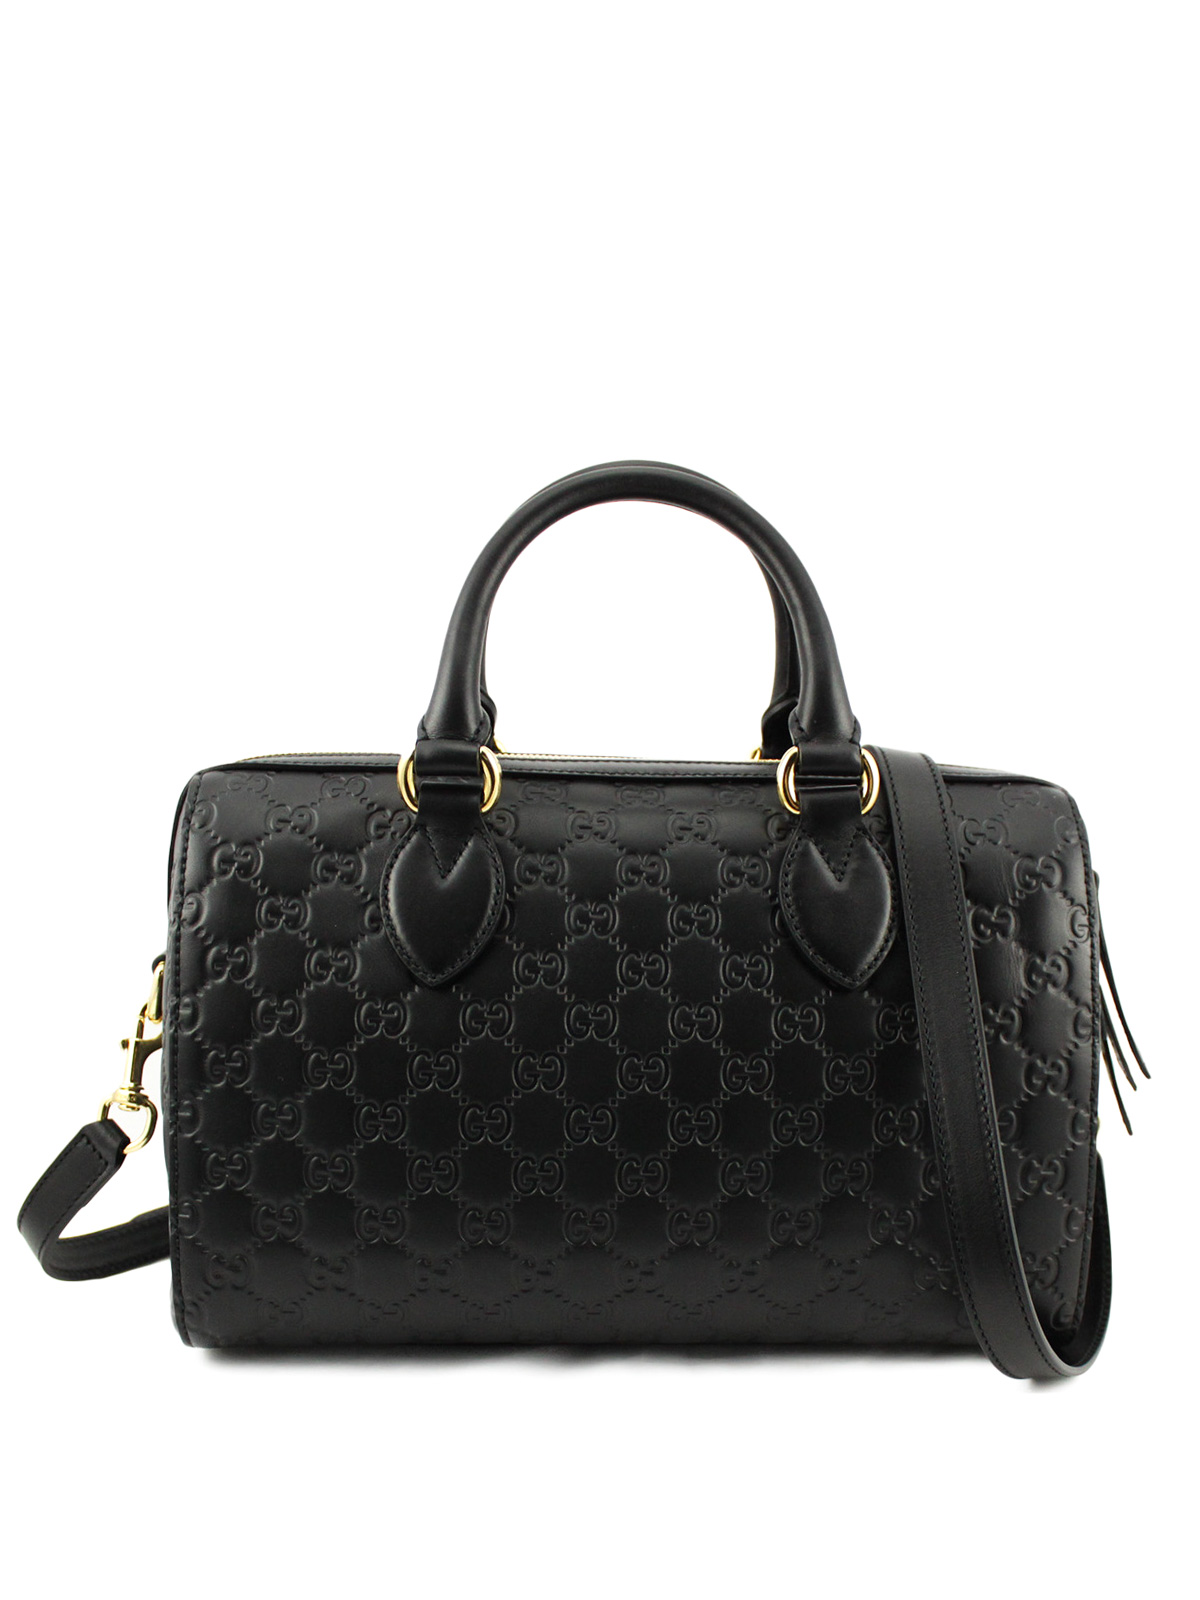 This authentic Celine Bowling Bag Leather Medium is an understated, stylized bowling bag made for the modern woman. Constructed from black leather, this chic bowler bag features dual-rolled leather handles, logo imprint and with pin detail at center front, protective base .